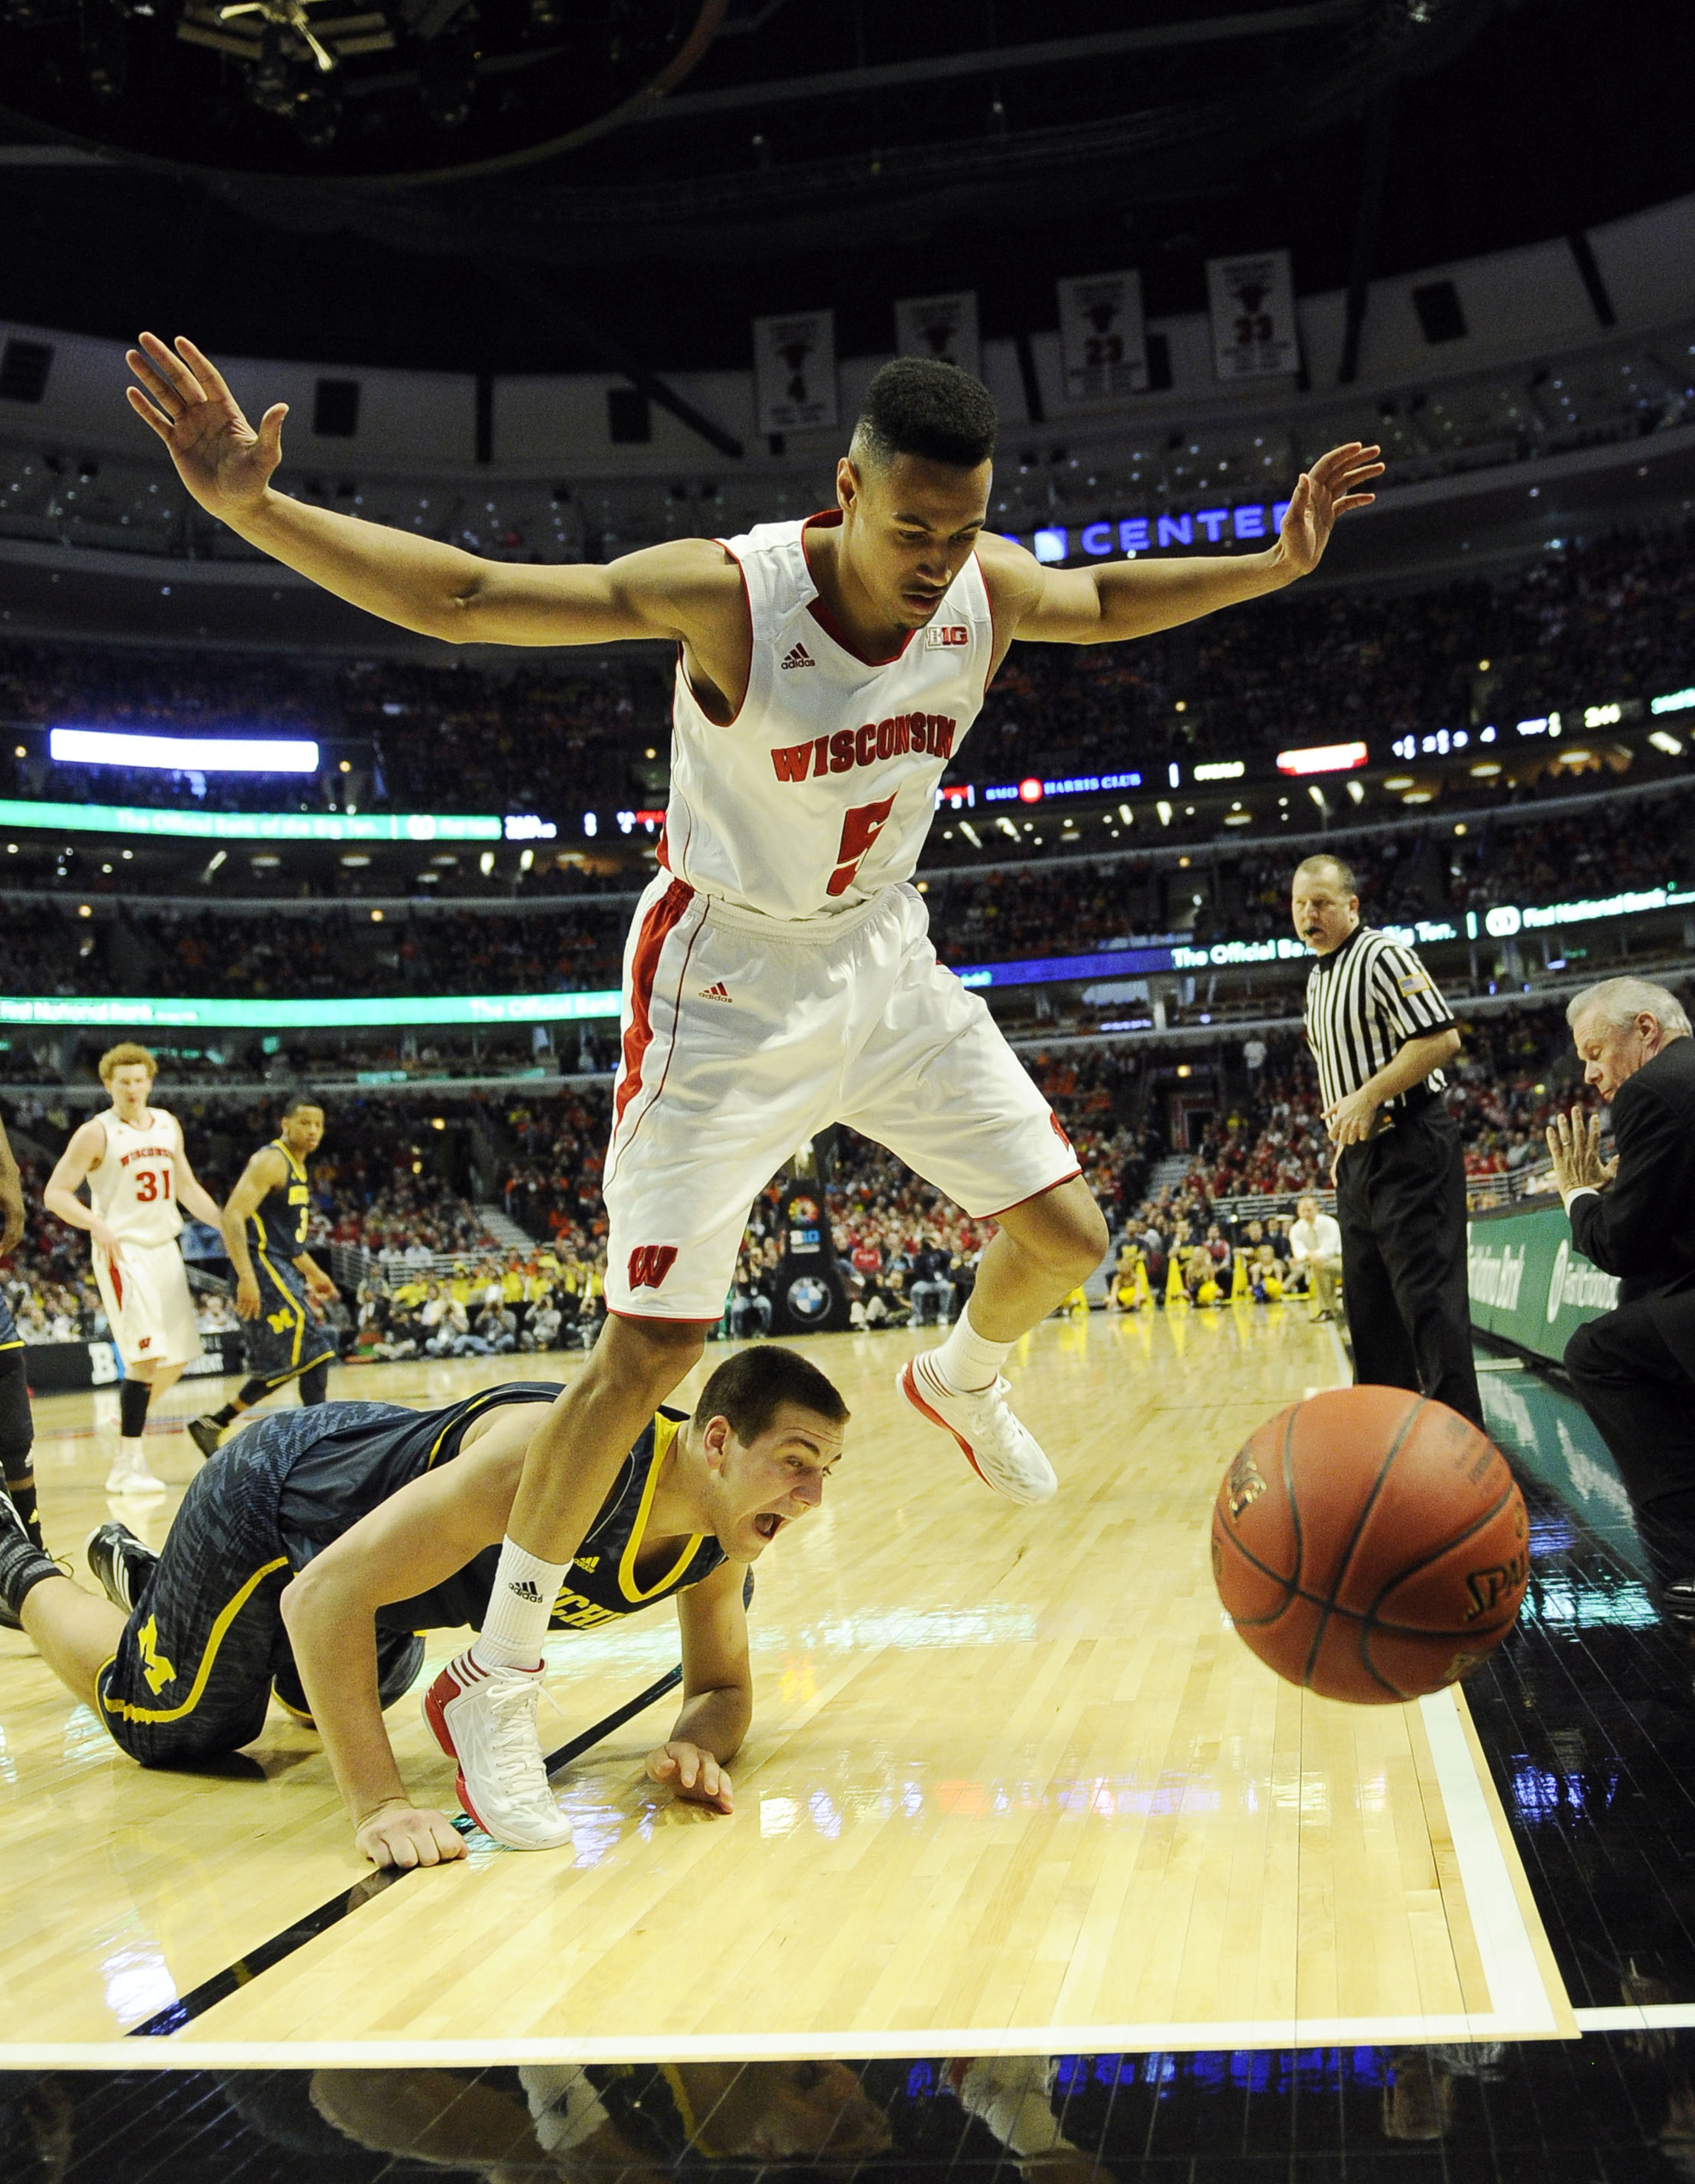 Ryan Evans powered UW past Michigan with a great floor game. Can he do it again?